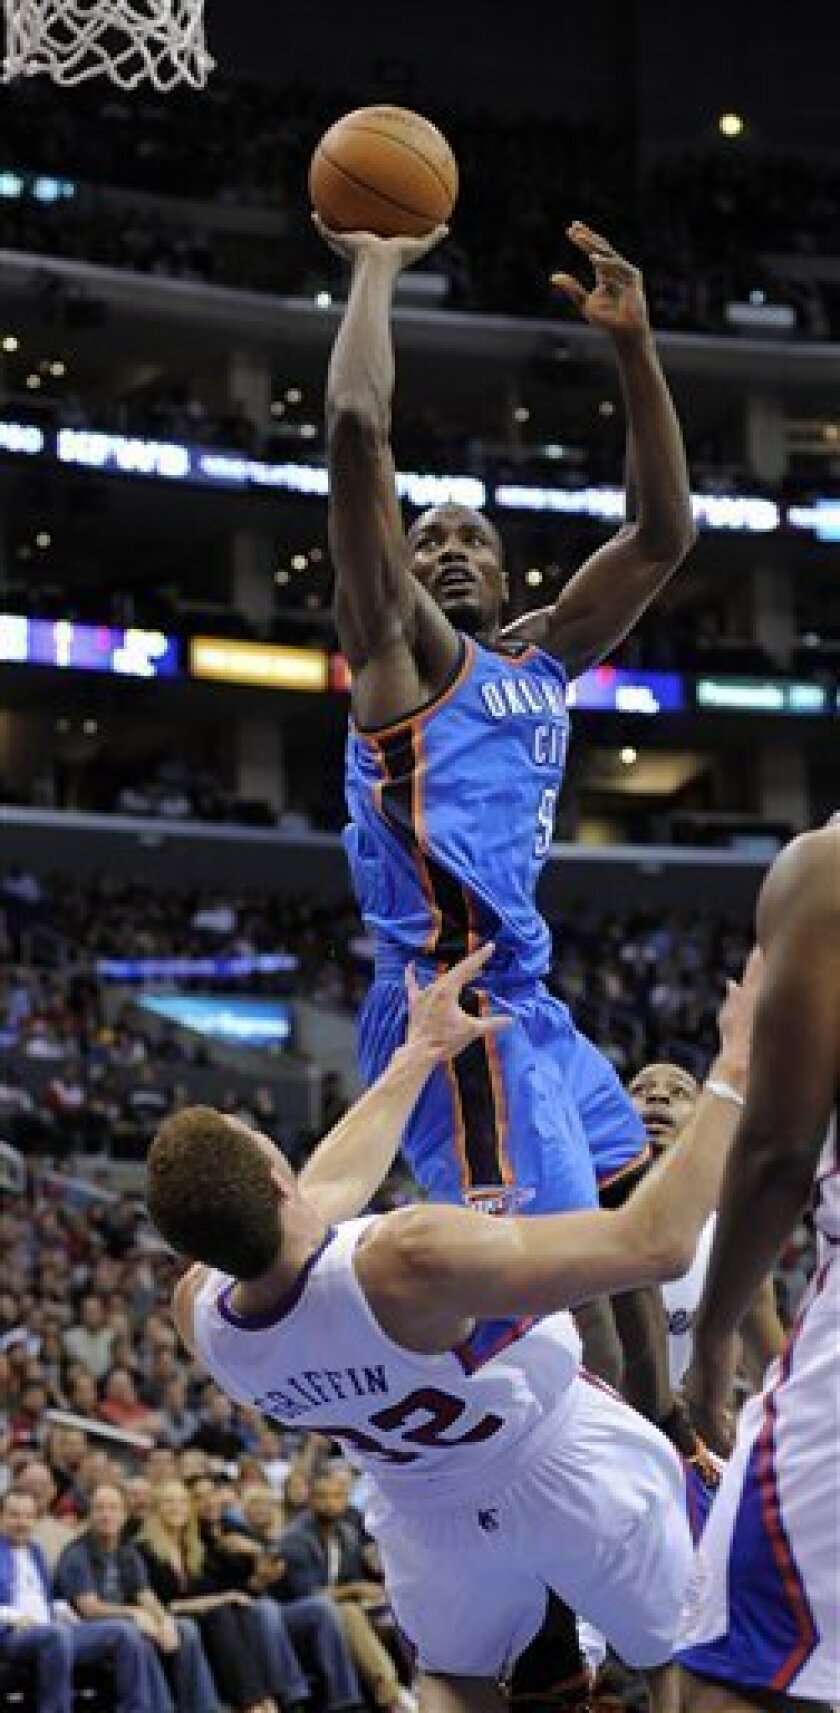 Oklahoma City Thunder forward Serge Ibaka, top, of the Republic of the Congo puts up as shot as Los Angeles Clippers forward Blake Griffin falls during the first half of their NBA basketball game on Saturday, April 2, 2011, in Los Angeles. (AP Photo/Mark J. Terrill)